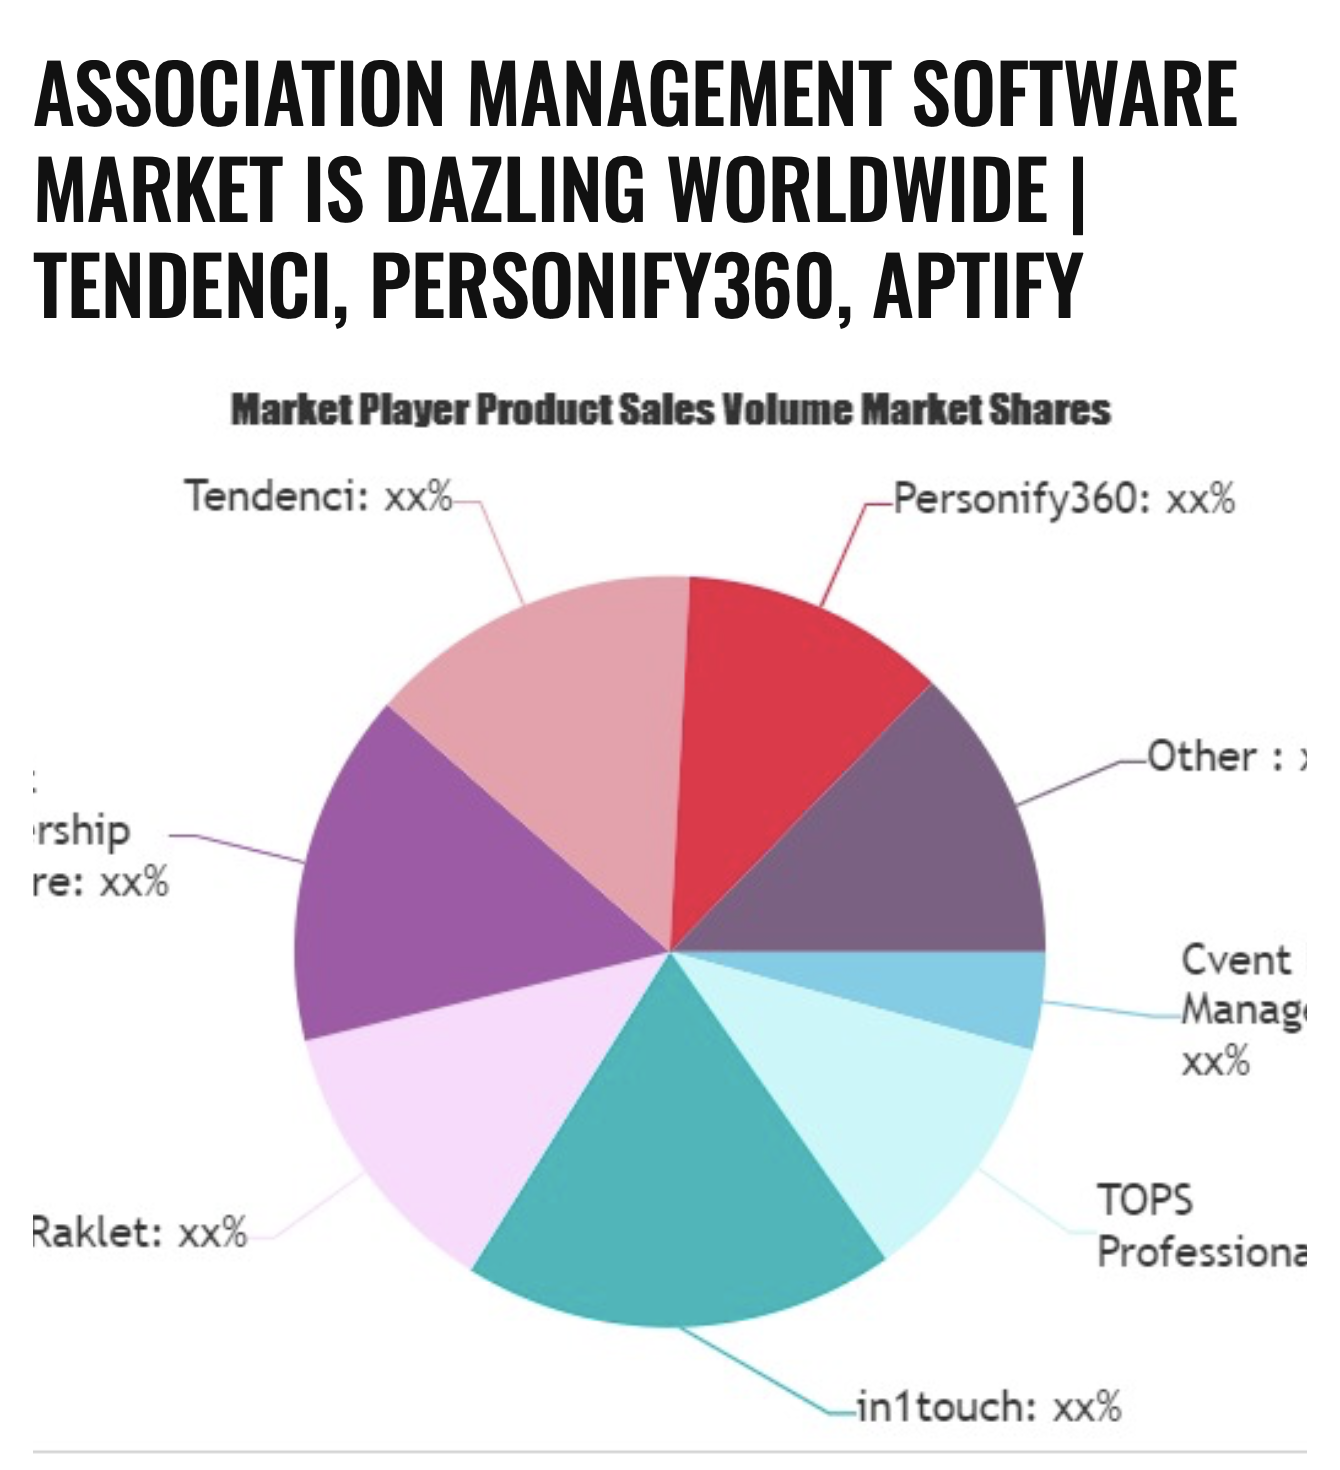 Tendenci AMS Software Market Projection Continues to Thrive Worldwide - Open Source AMS